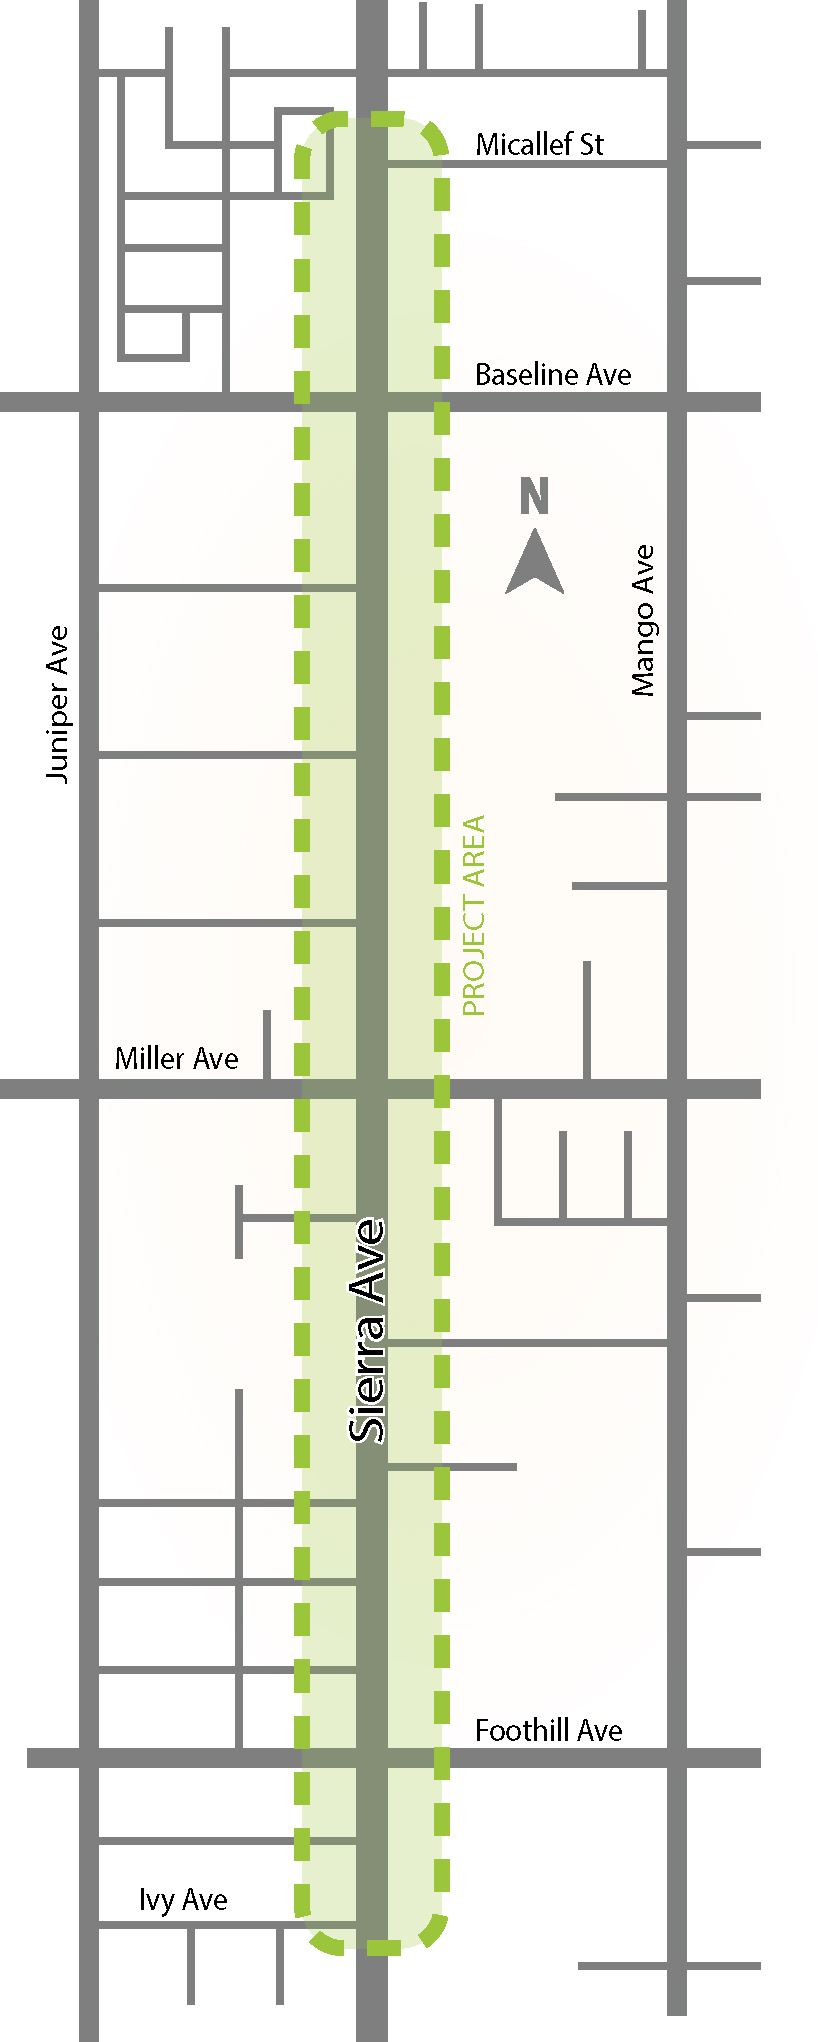 Sierra Avenue (Foothill Boulevard to Baseline Avenue) Street Improvement Project Area